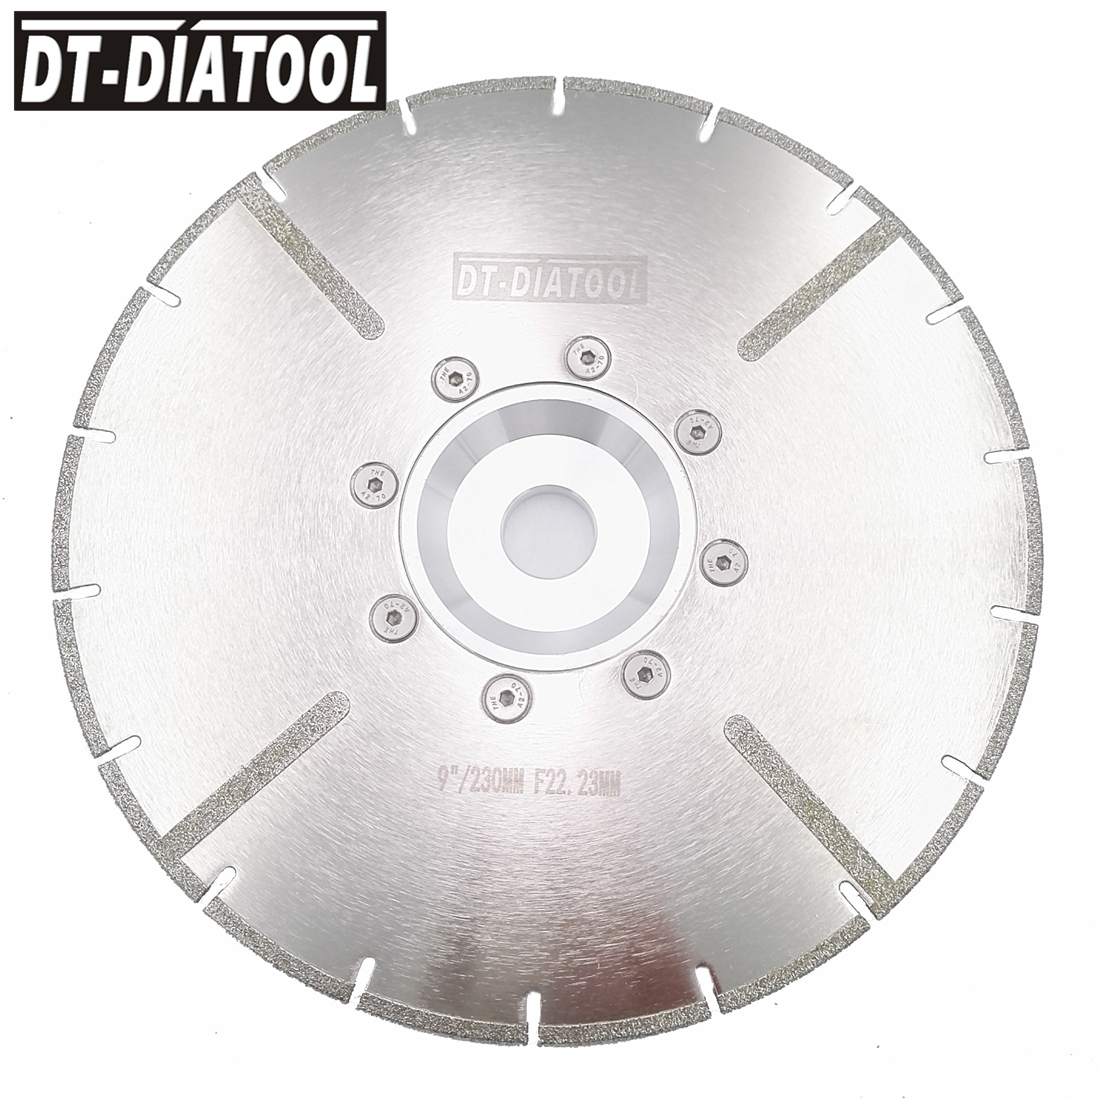 DT-DIATOOL 230mm Electroplated Reinforced Diamond Cutting Disc 22.23MM Flange 9 Inches For Tile And Marble Diamond Saw Blade